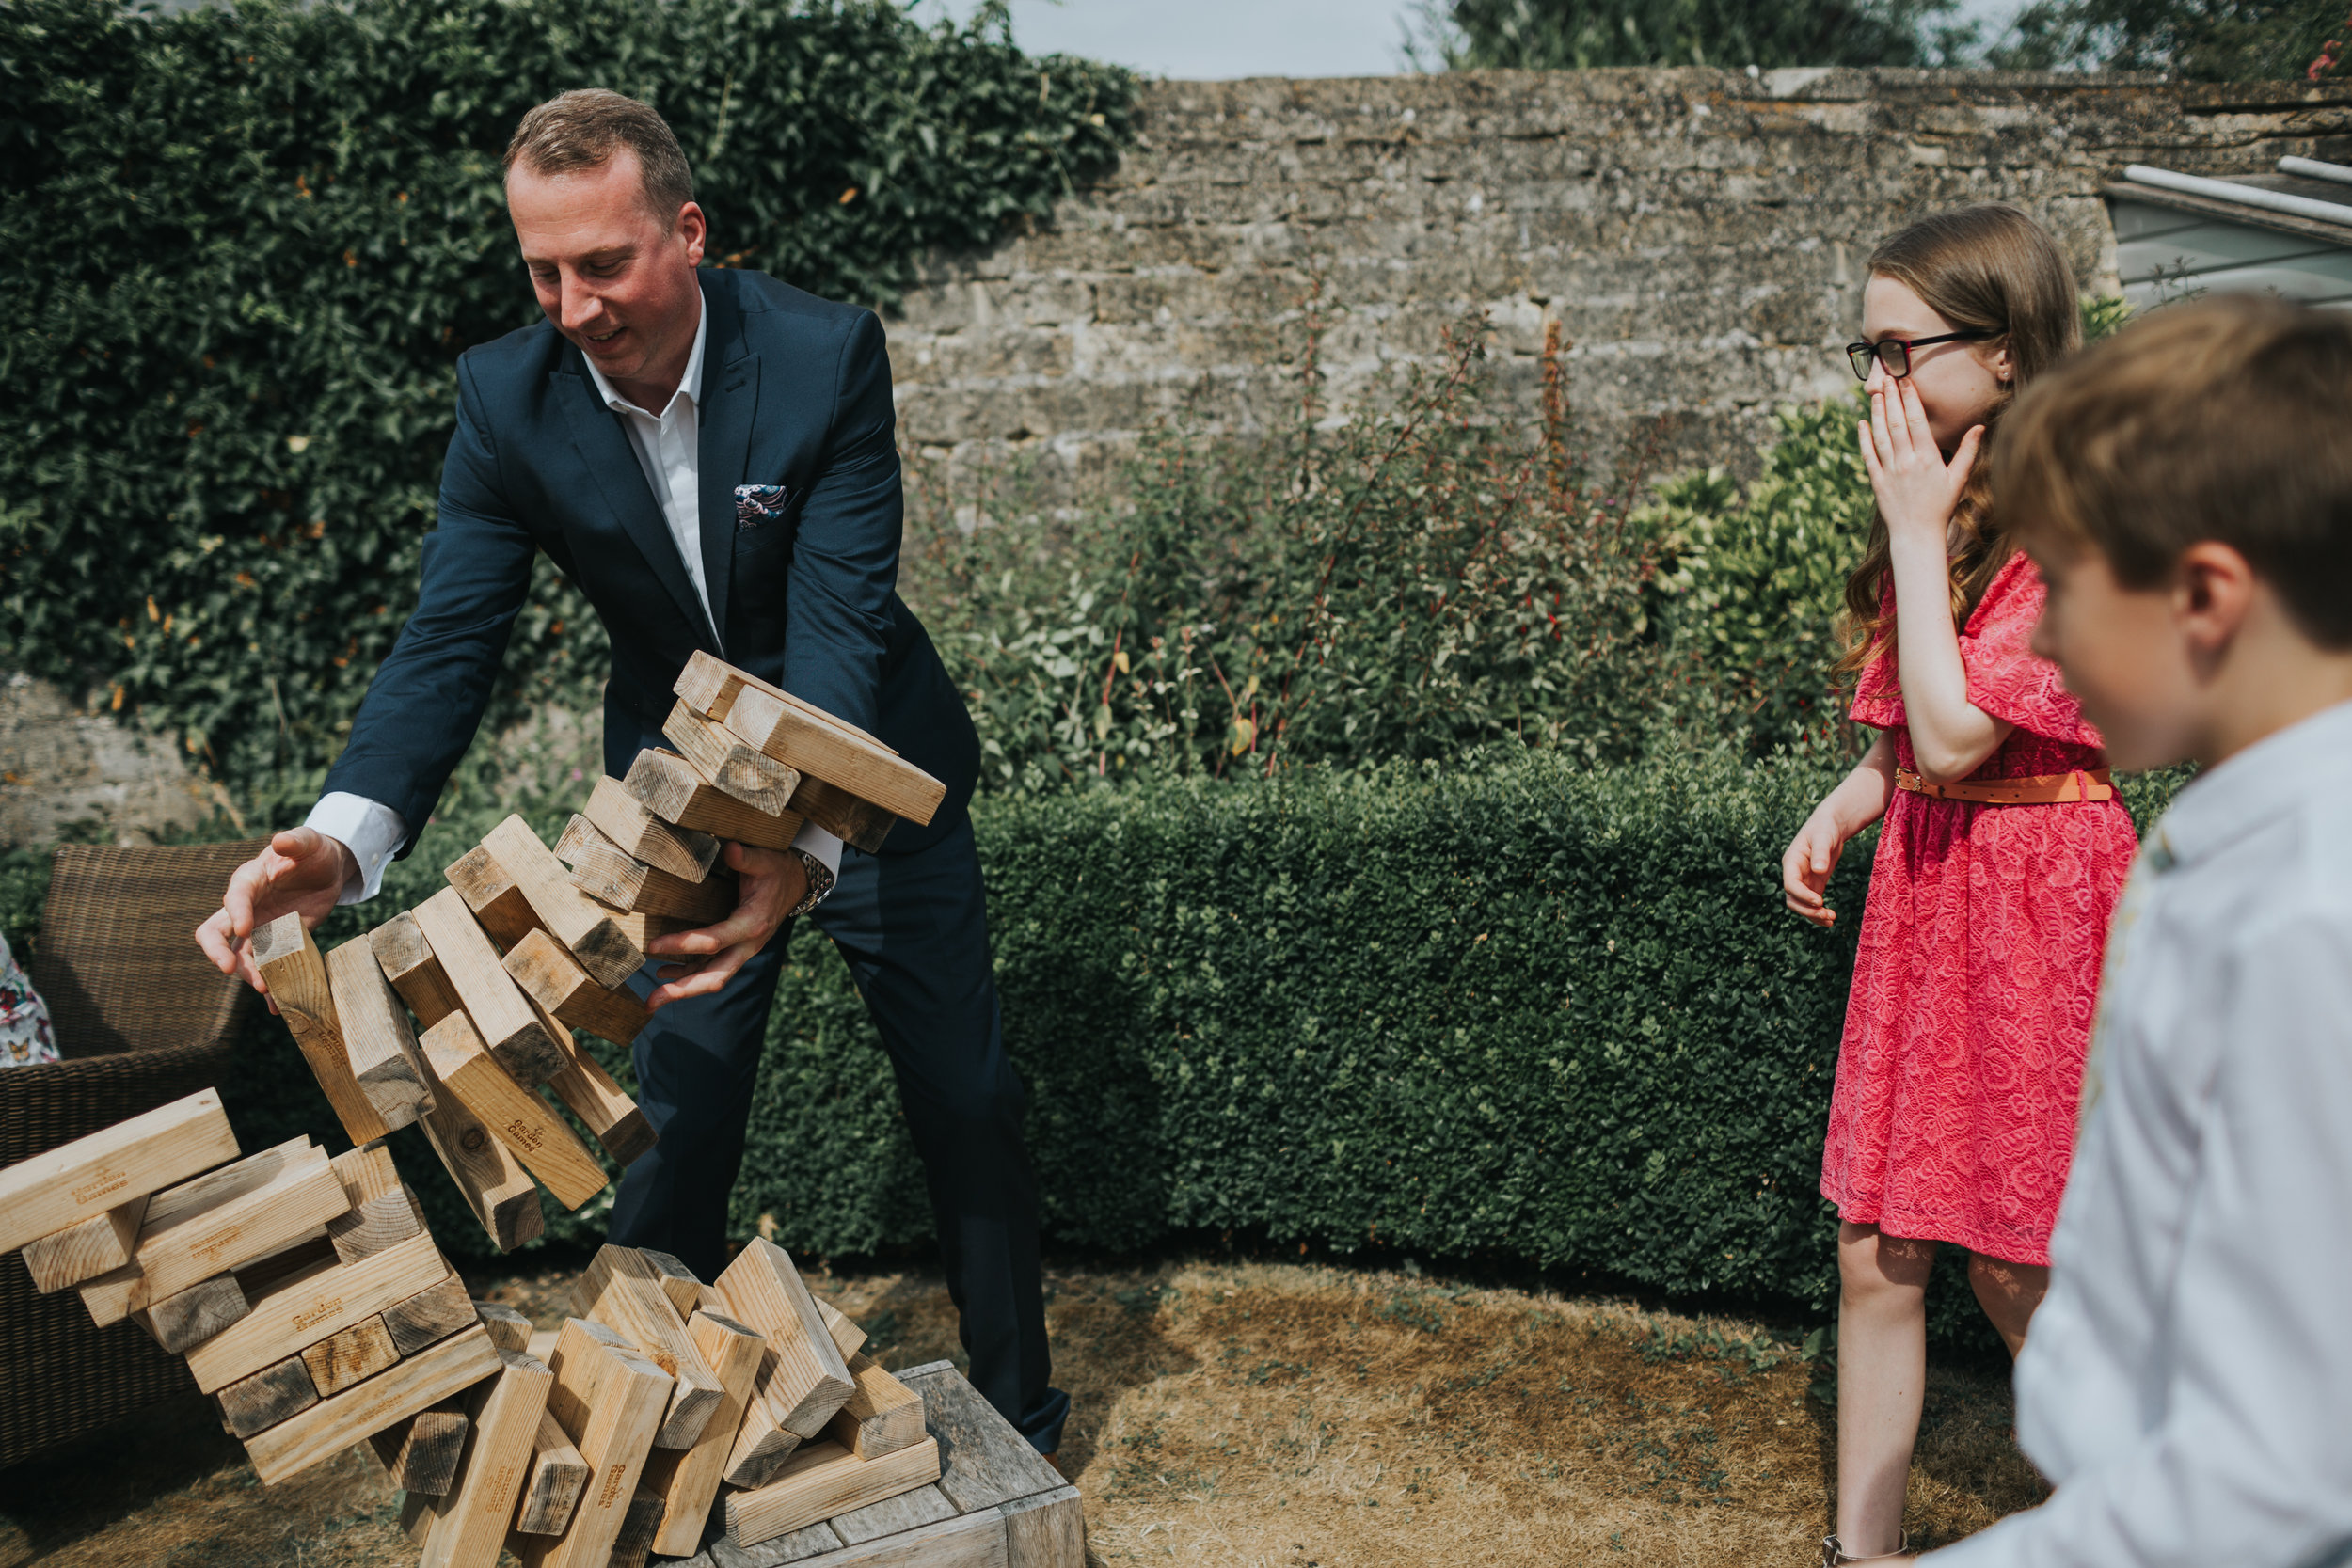 Adult fails at giant jenga at outdoor wedding, while children mock him.